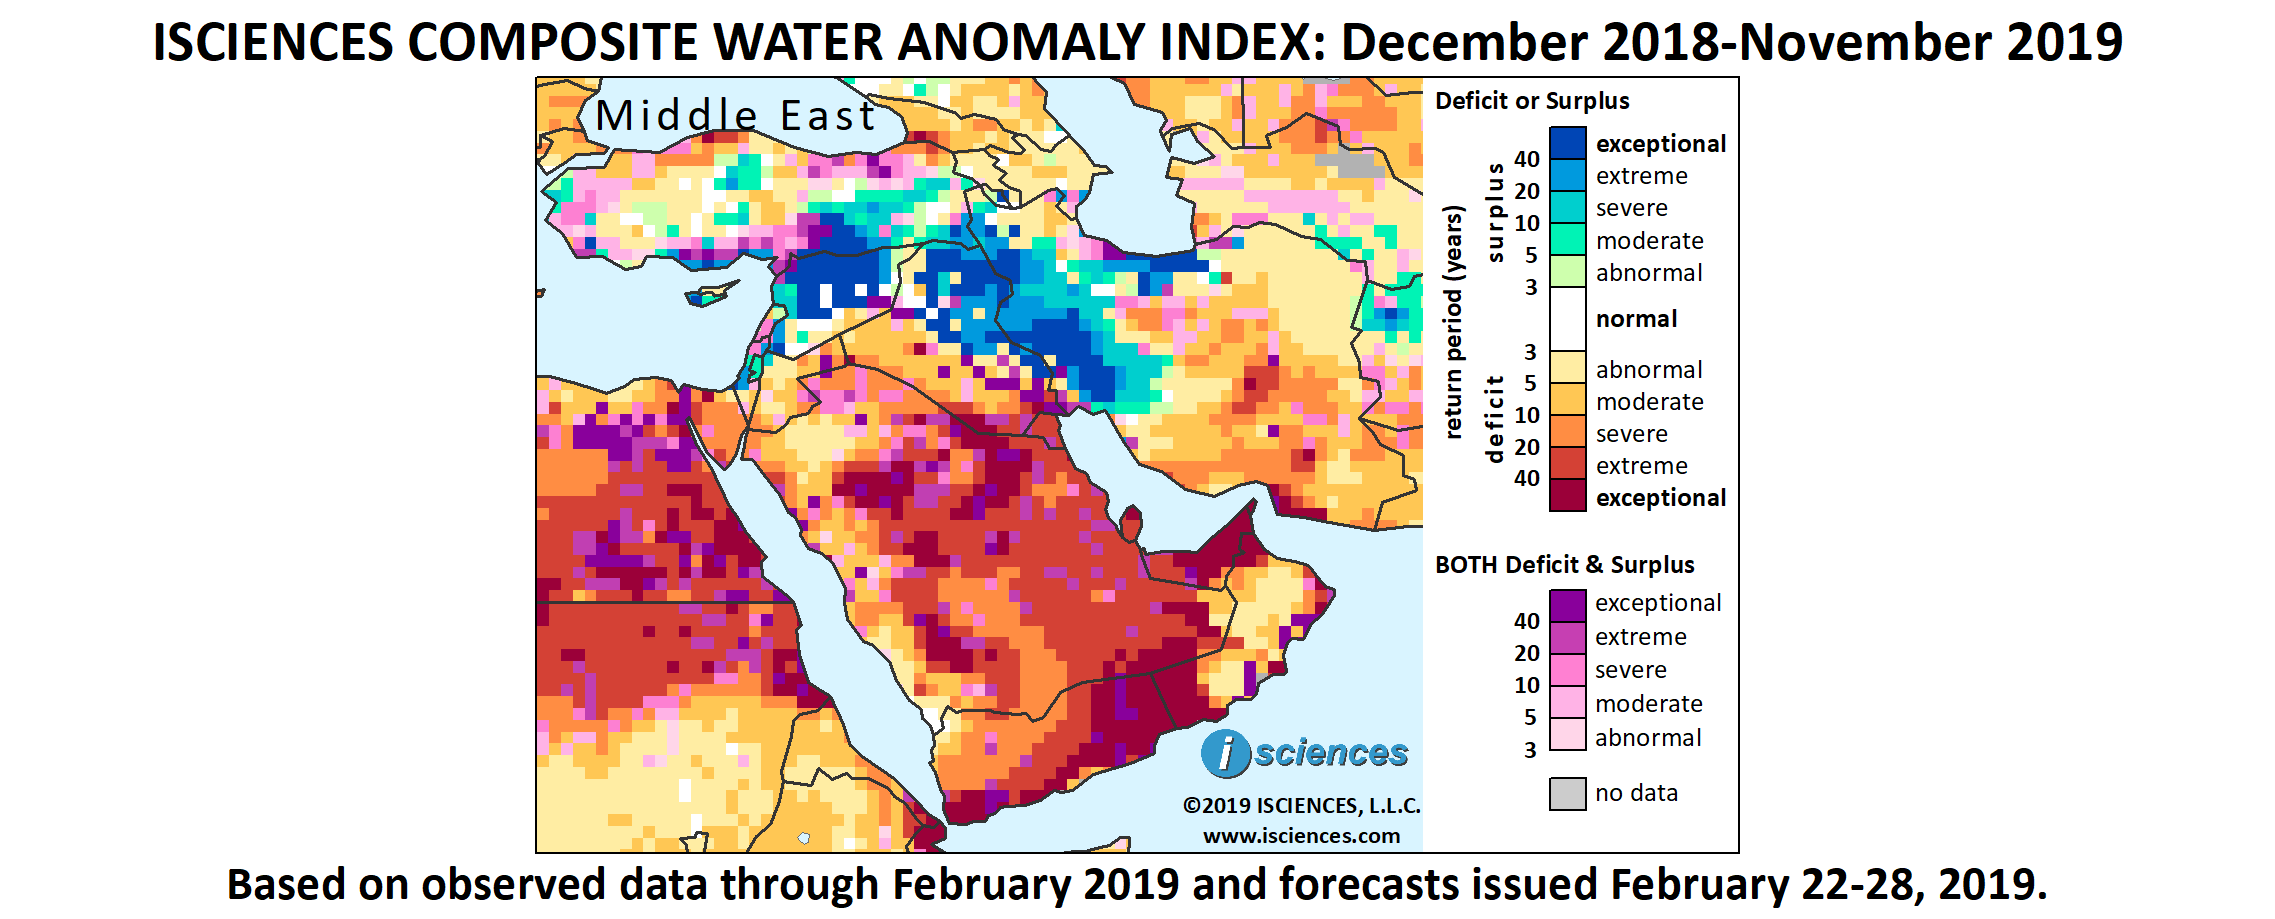 ISciences_MidEast_R201902_12mo_twit_pic.png